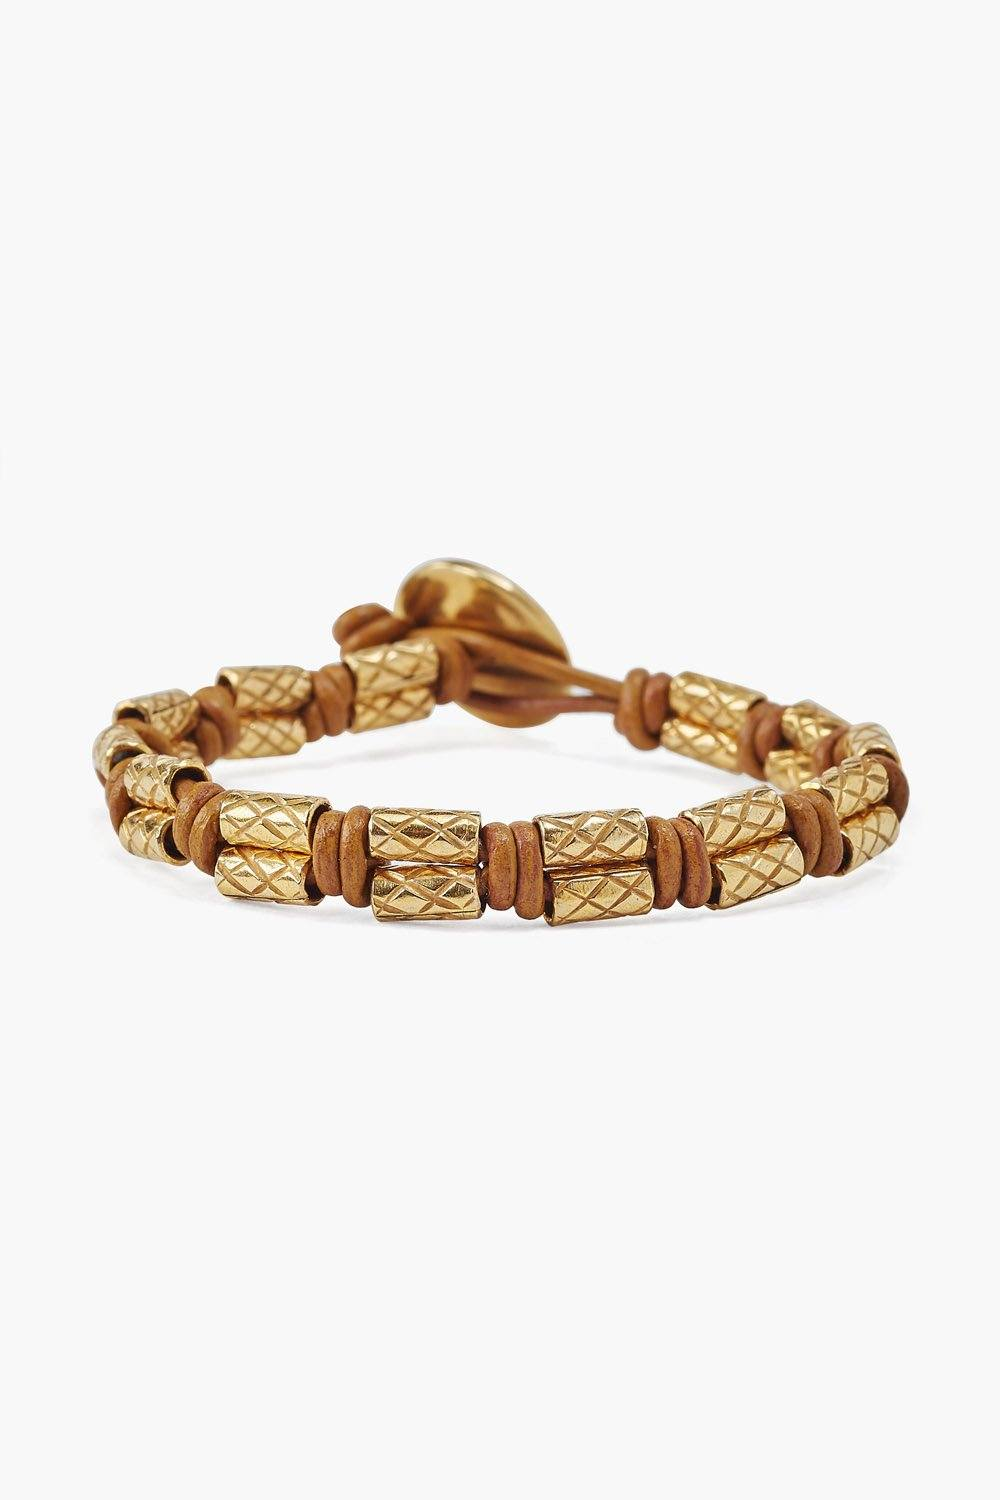 Etched Gold Heishi Single Wrap Bracelet on Natural Brown Leather